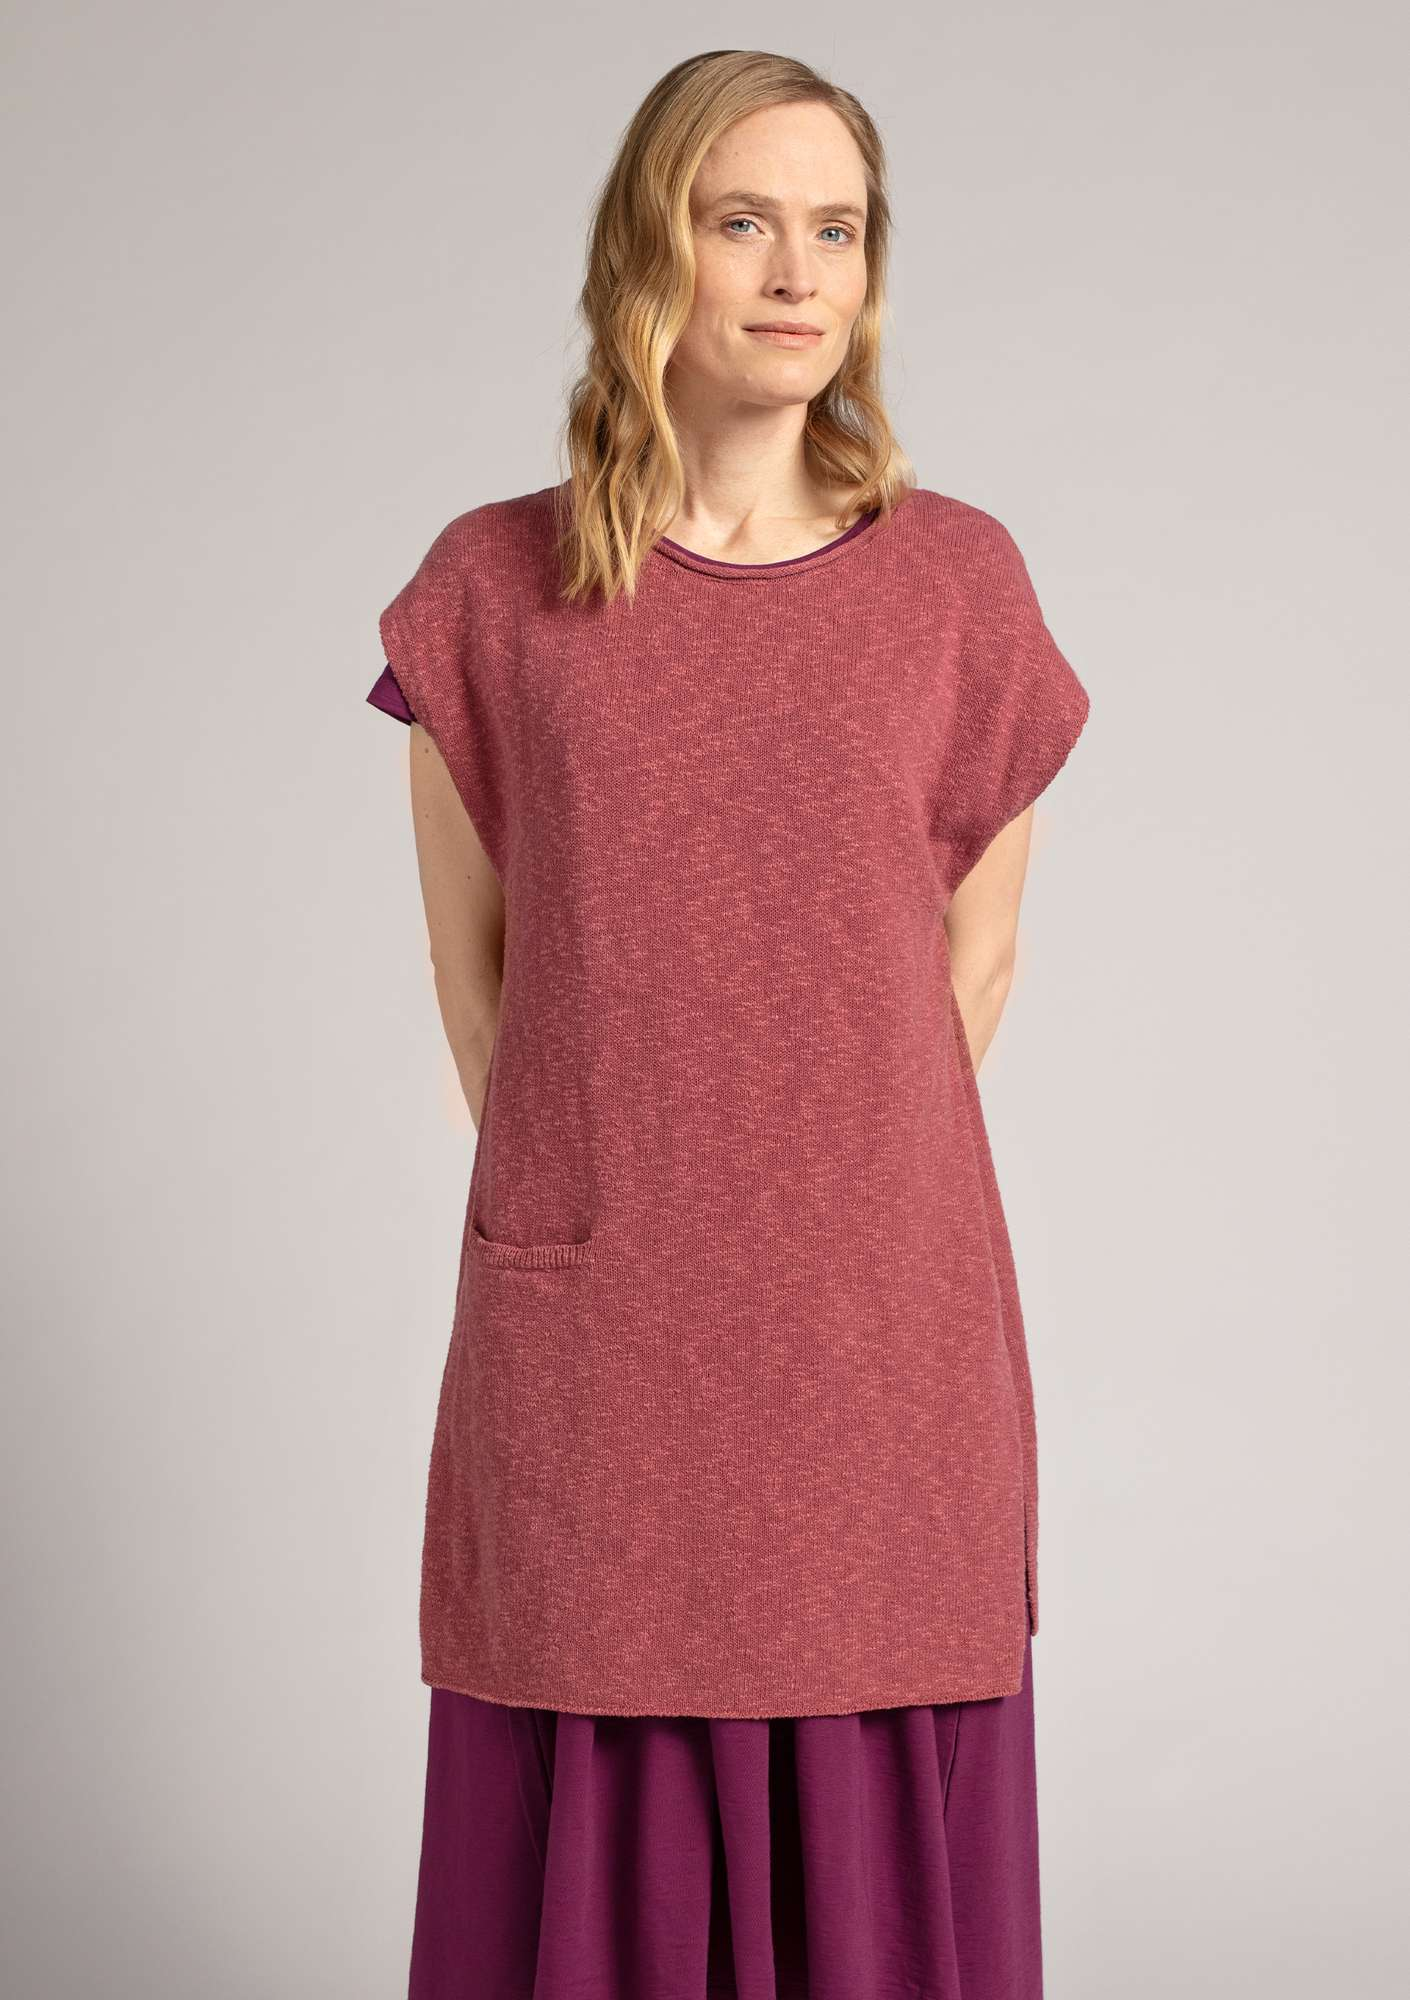 Sleeveless tunic in eco-cotton/linen fig